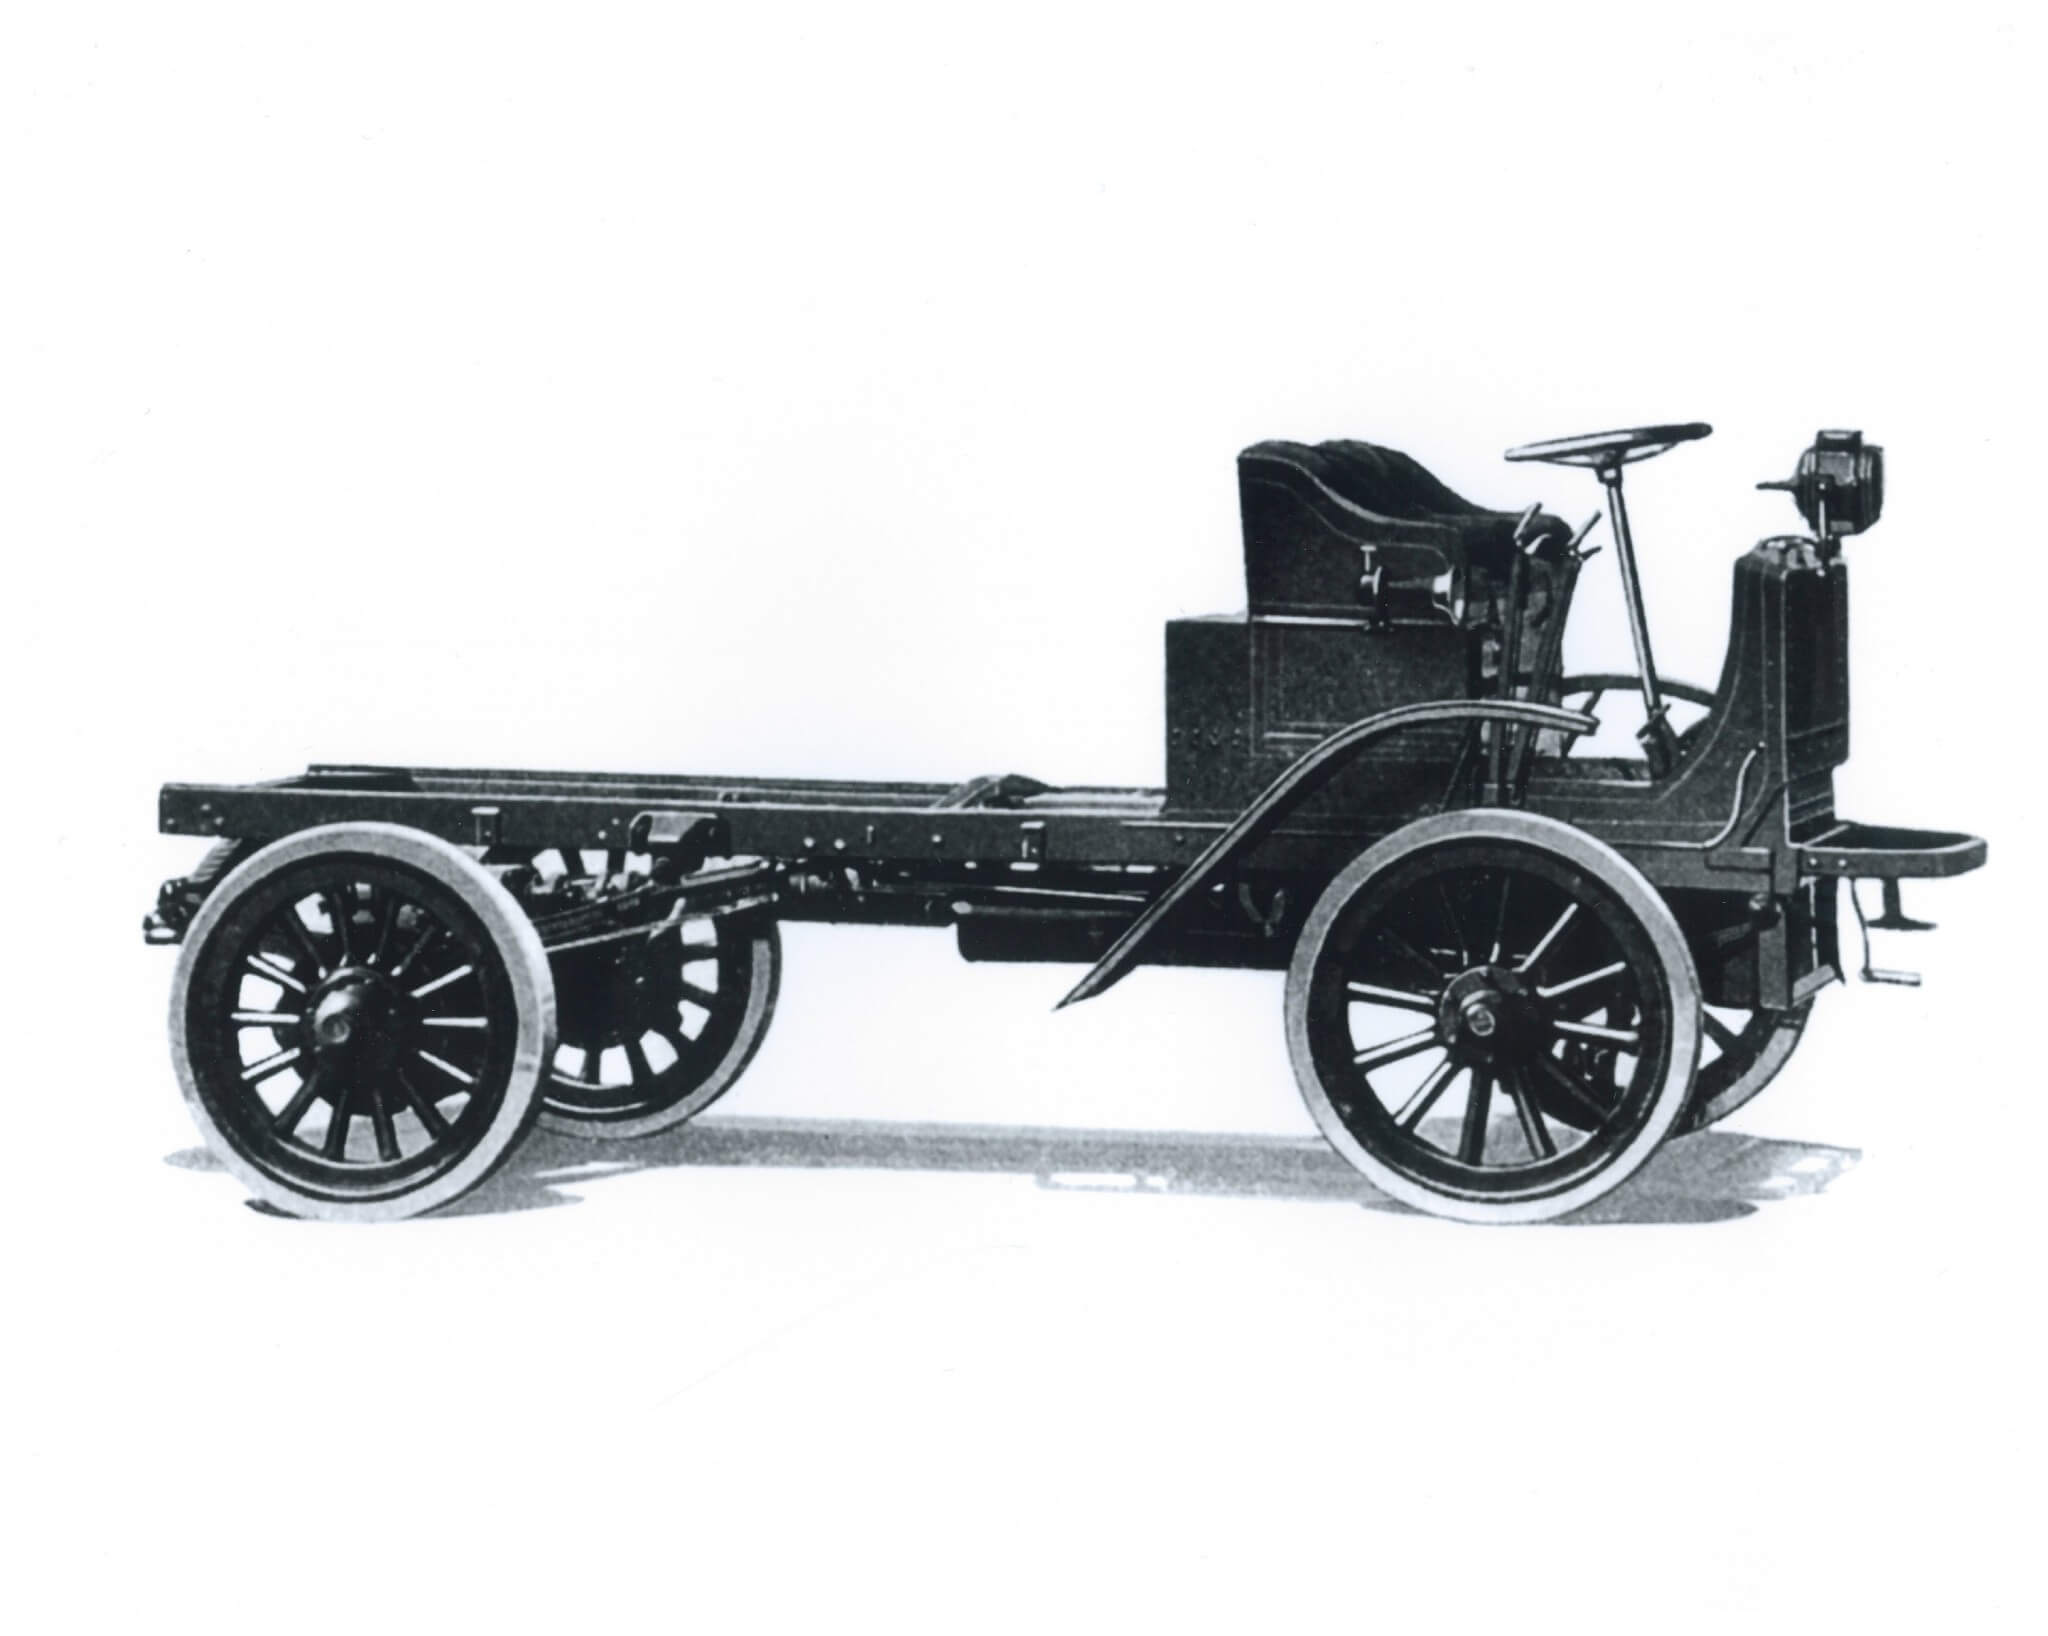 A Type XXI F platform from 1917. Note the inclusion of Autocar's unique driveshaft system as standard. No industry-accepted chain-drive components here.